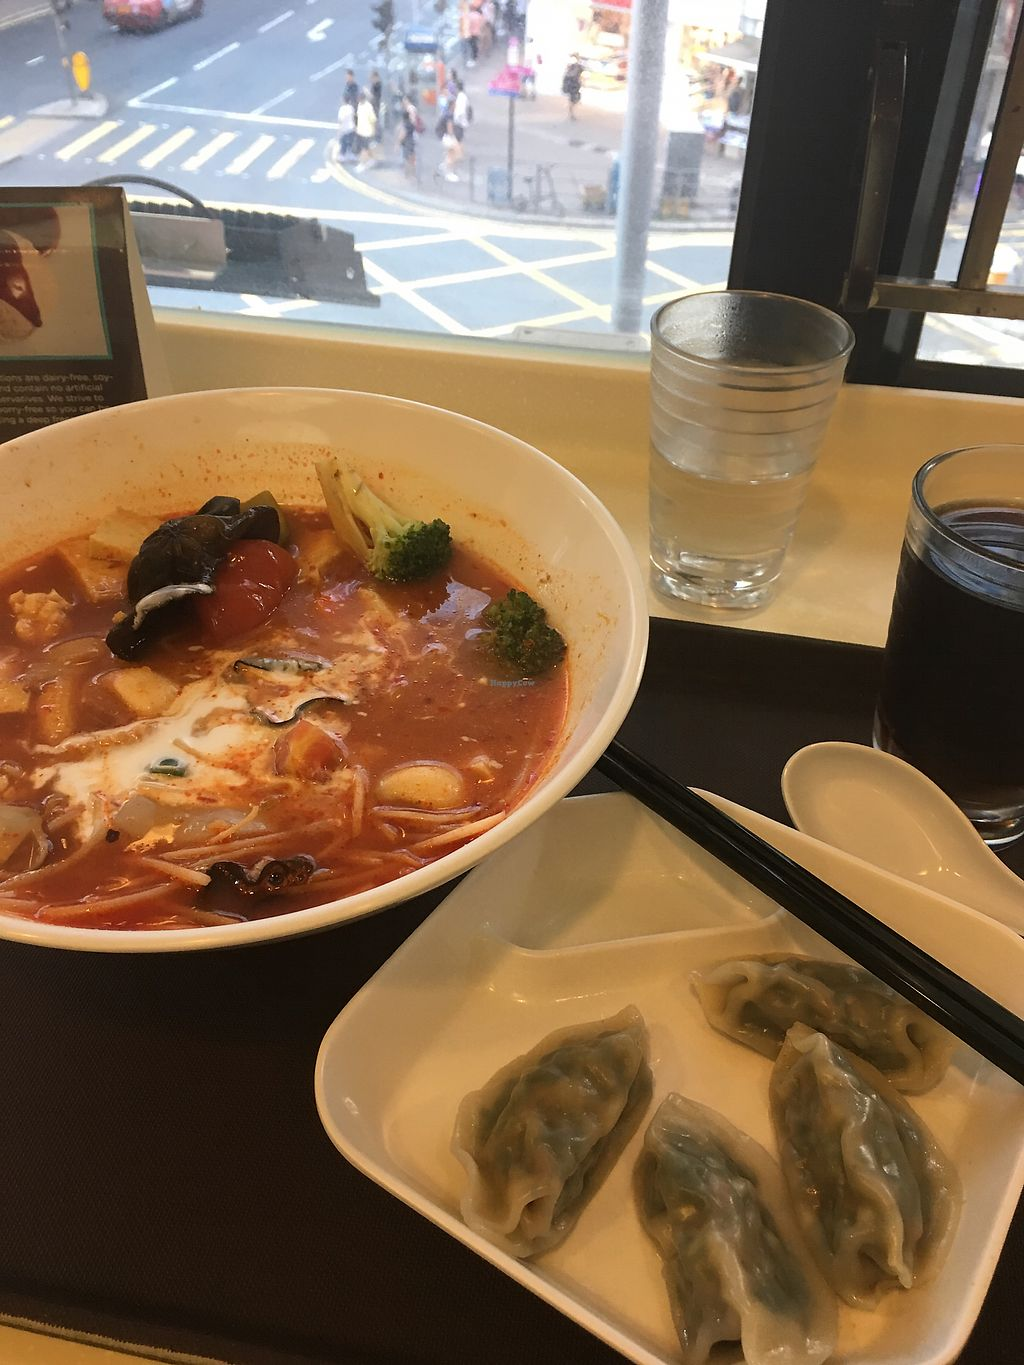 """Photo of Loving Hut - Wan Chai  by <a href=""""/members/profile/CHS"""">CHS</a> <br/>Delicious! <br/> May 23, 2018  - <a href='/contact/abuse/image/19570/403857'>Report</a>"""